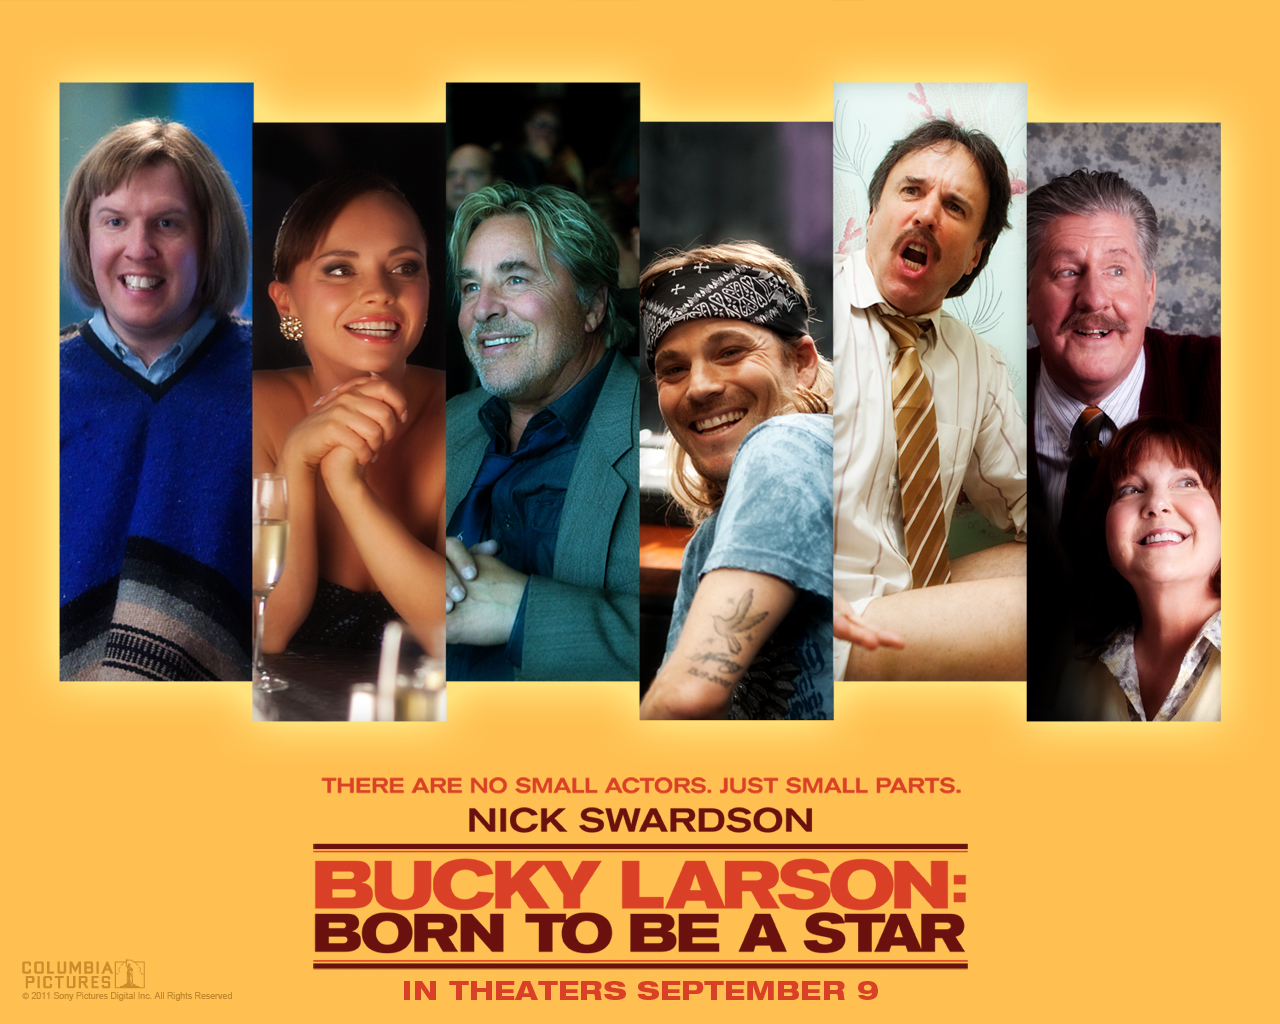 bucky larson born to be a star movie wallpaper 2011